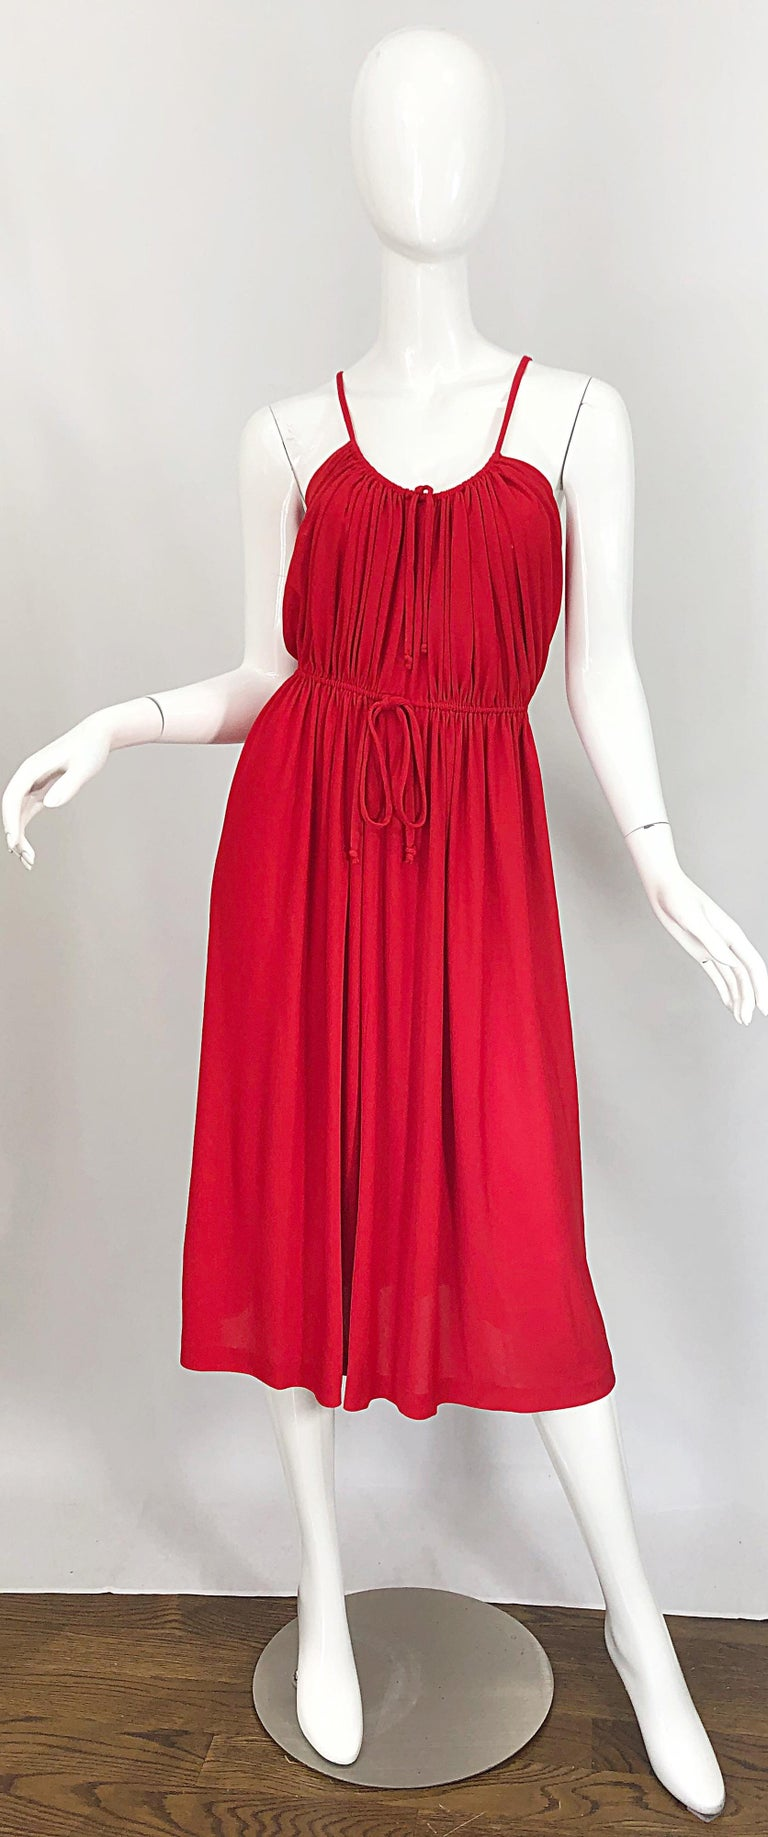 1970s Loris Azzaro Crimson Red Silk Jersey Grecian Inspired Vintage 70s Dress For Sale 10